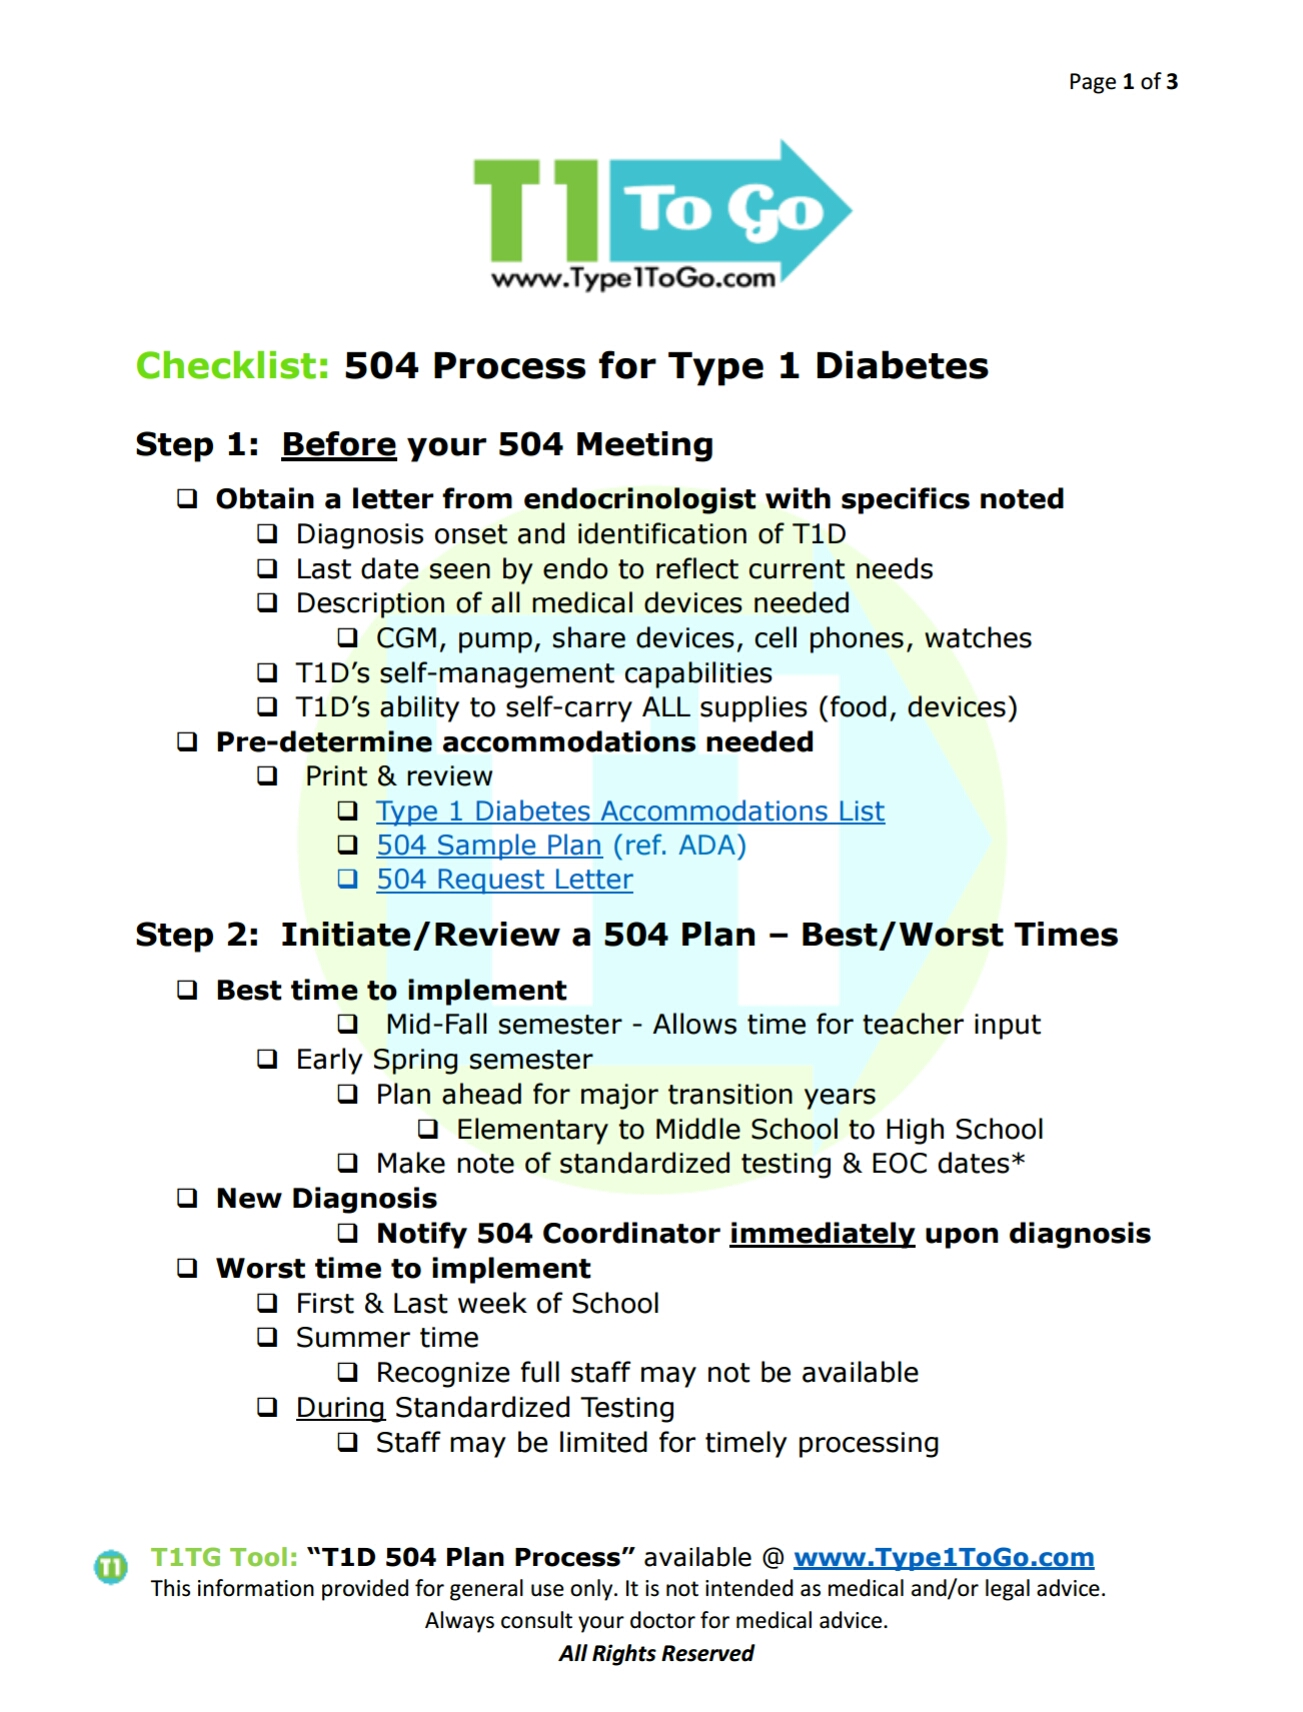 T1D 504 Process Pg 1 - Type 1 To Go